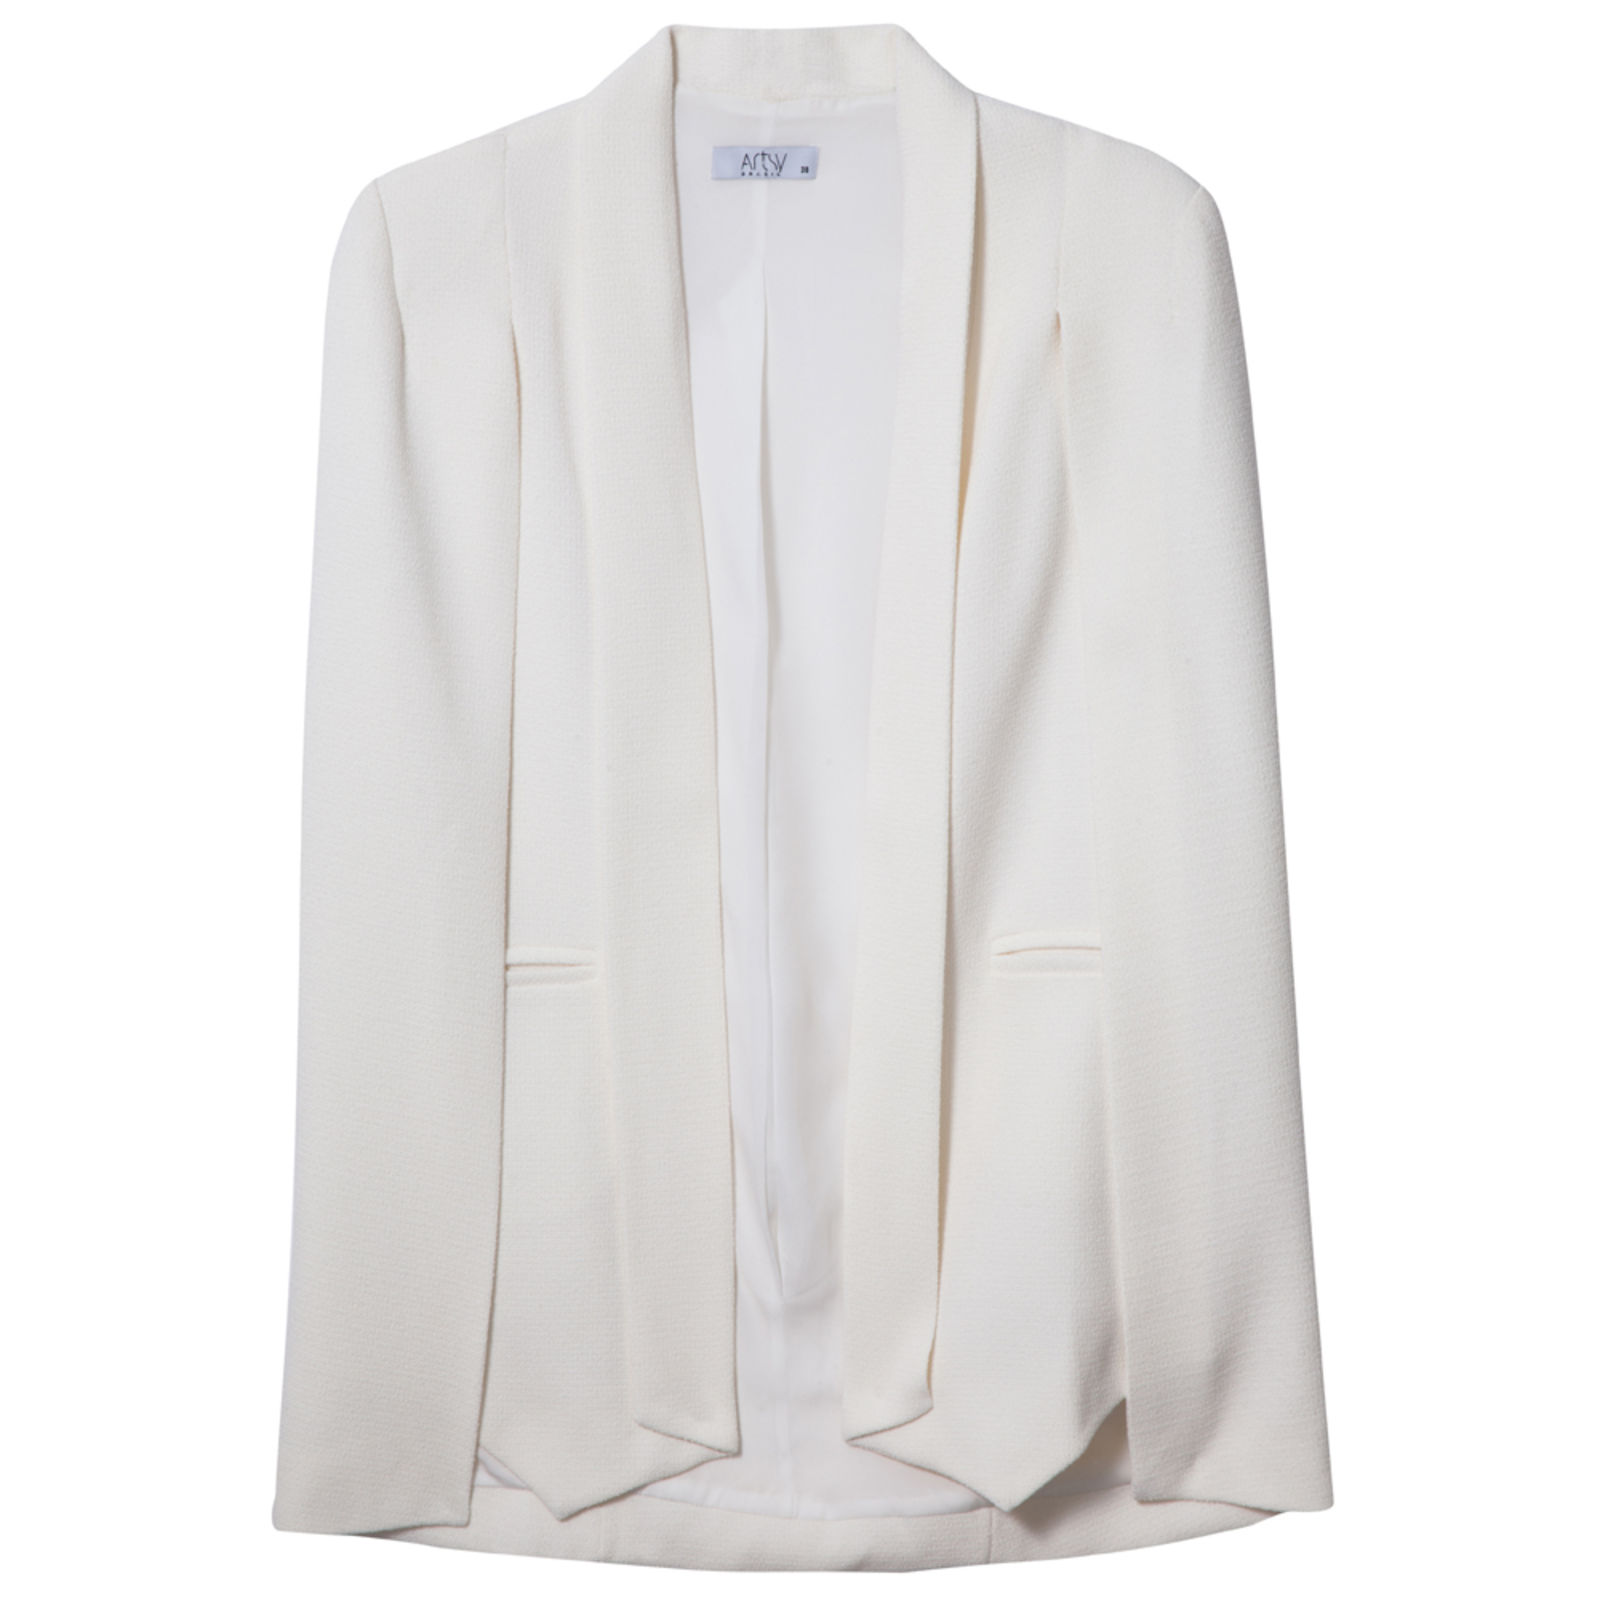 Blazer Artsy desconstruido - off white